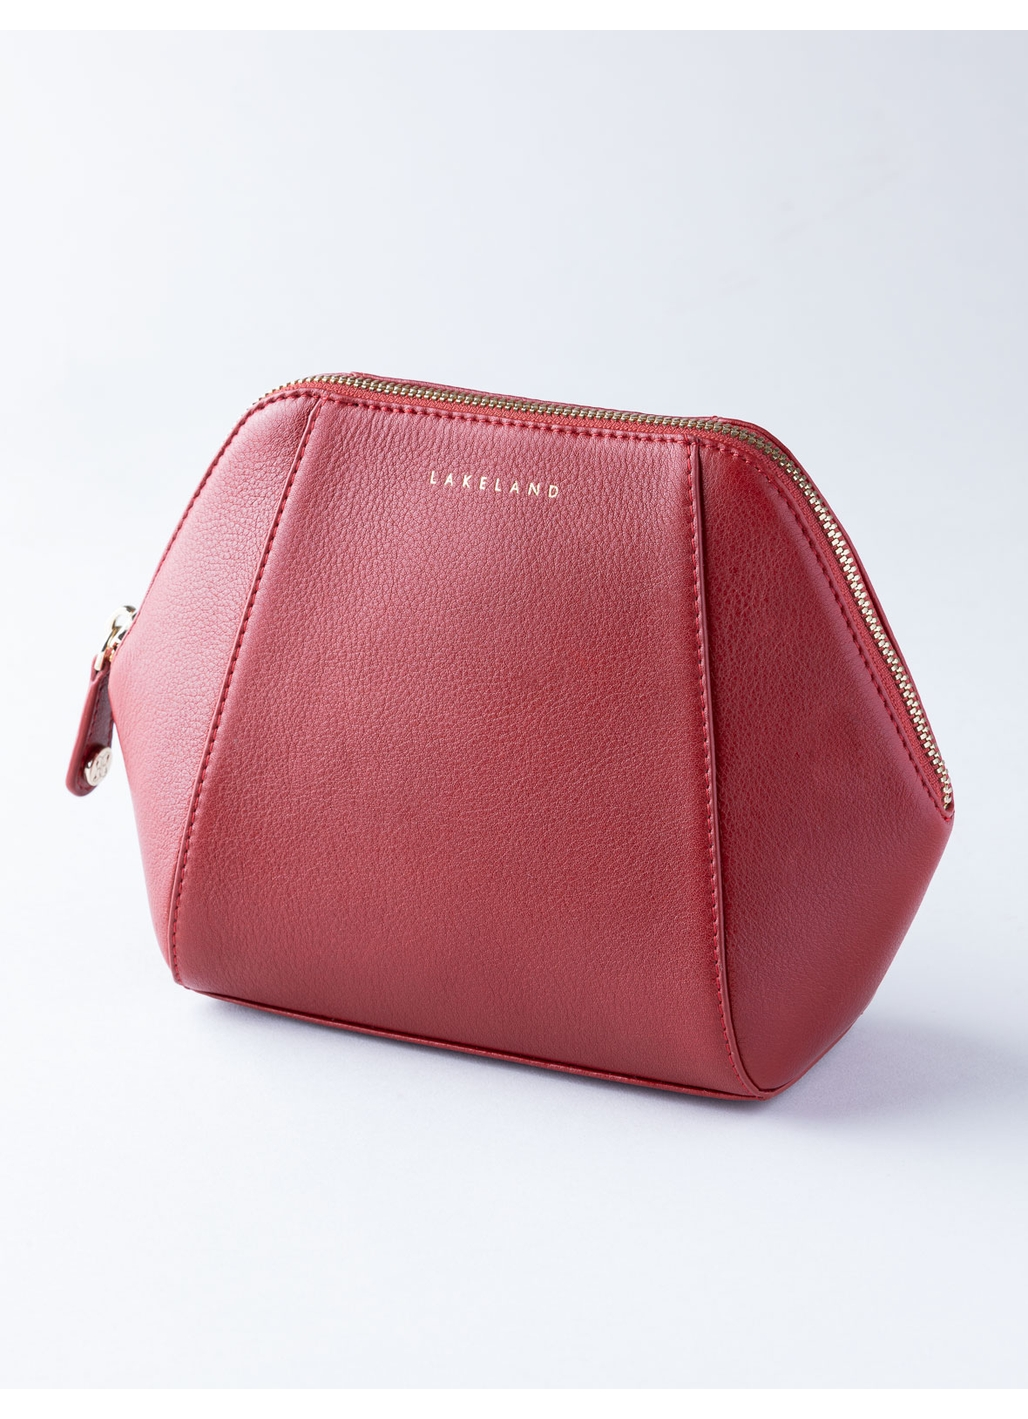 Wray Leather Cosmetic Bag in Red